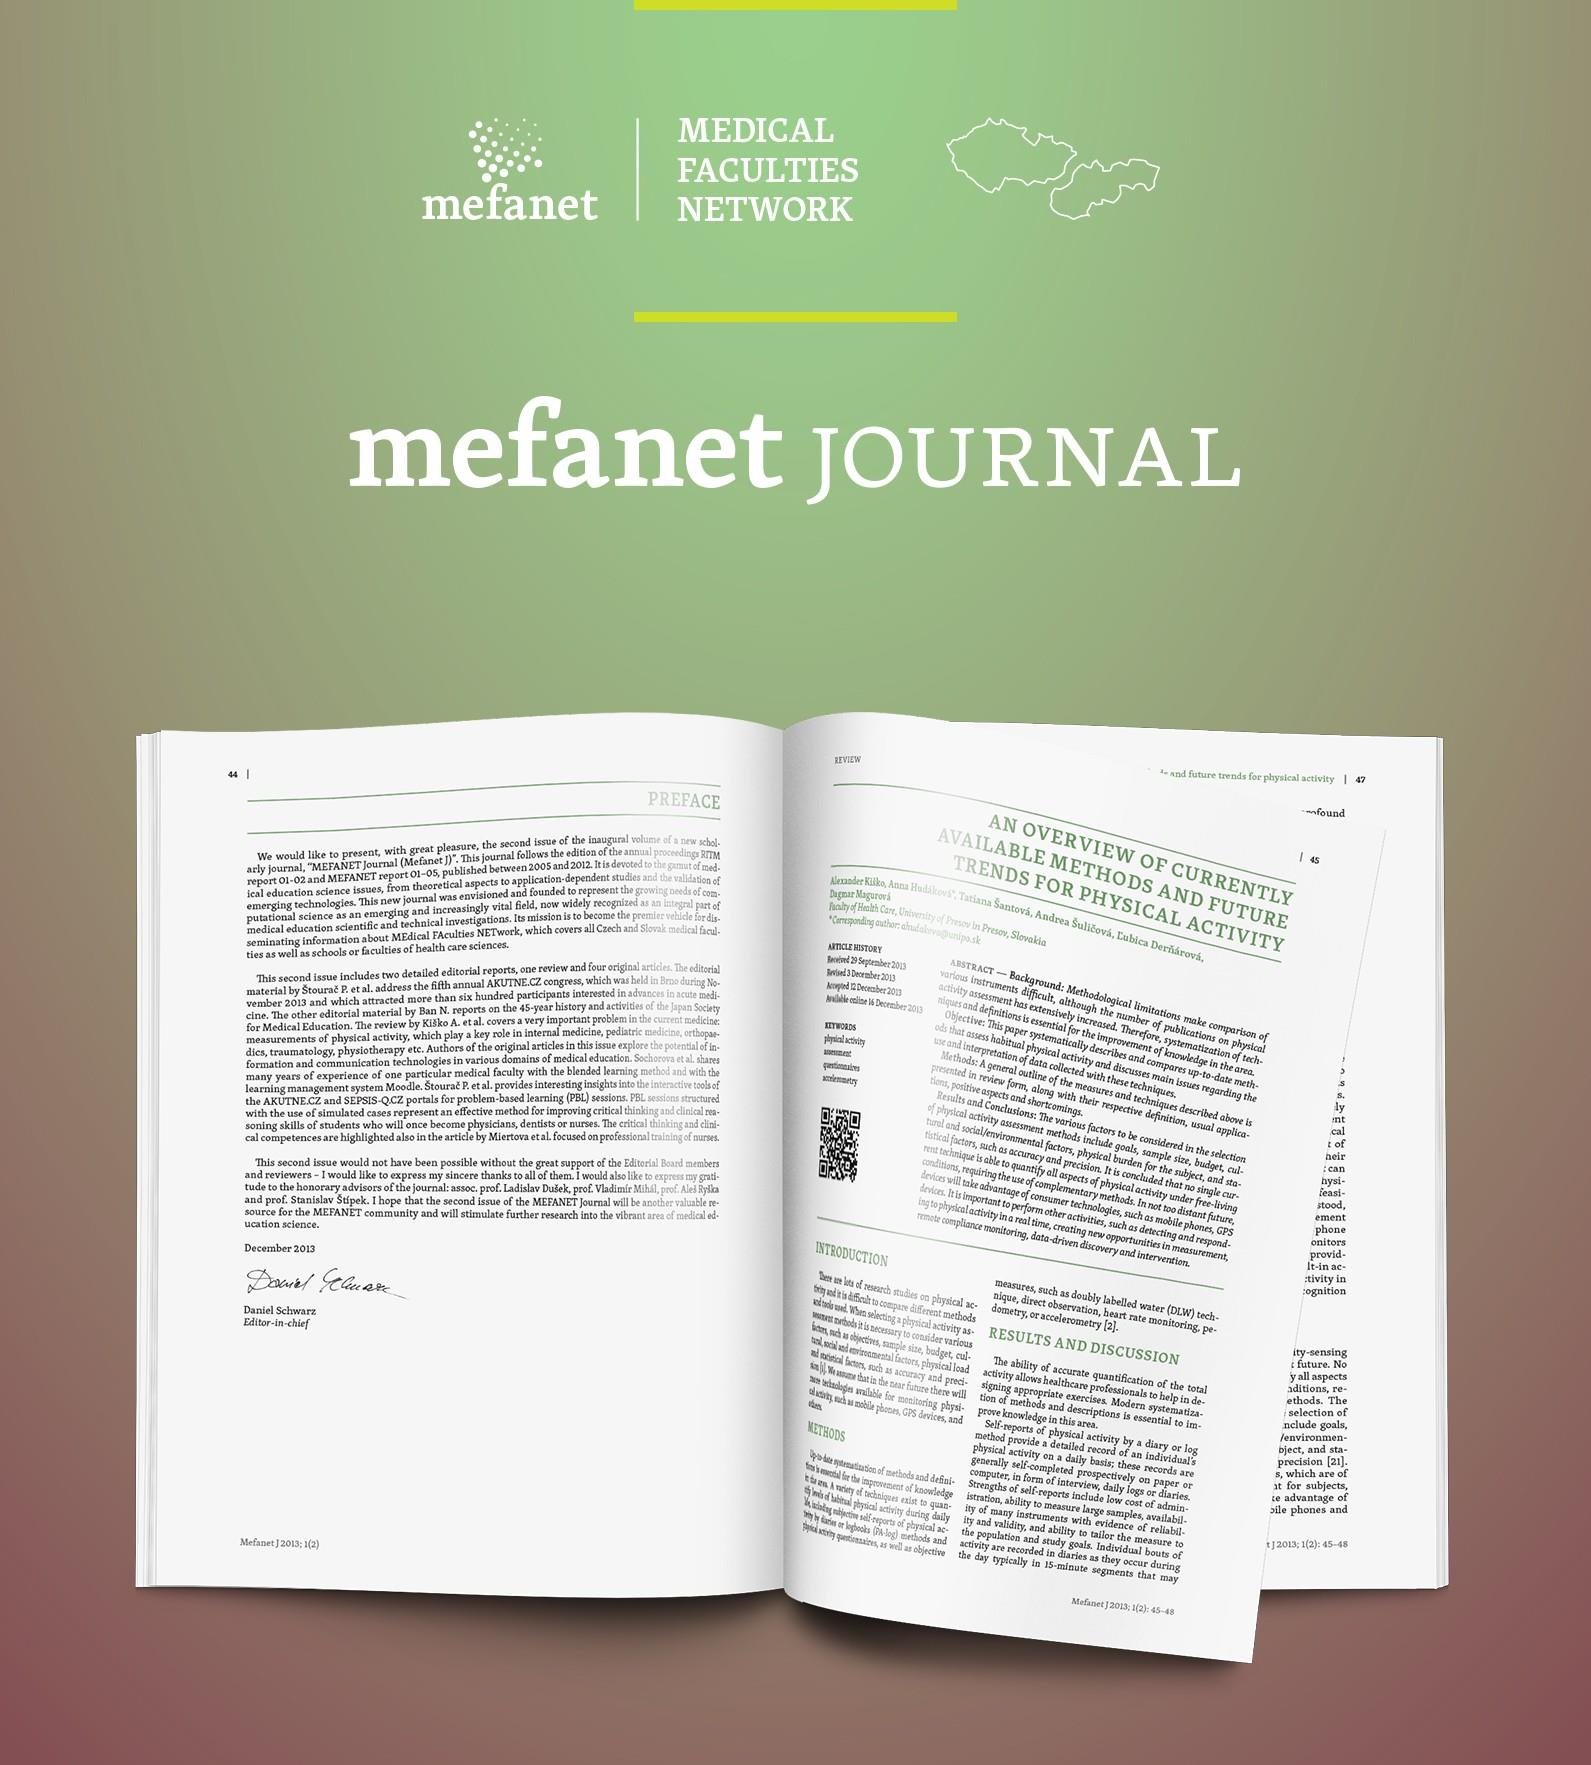 continues in the tradition of post-conference, education-oriented summary proceedings MEFANET Report 01 05, being published in 2007-2012.